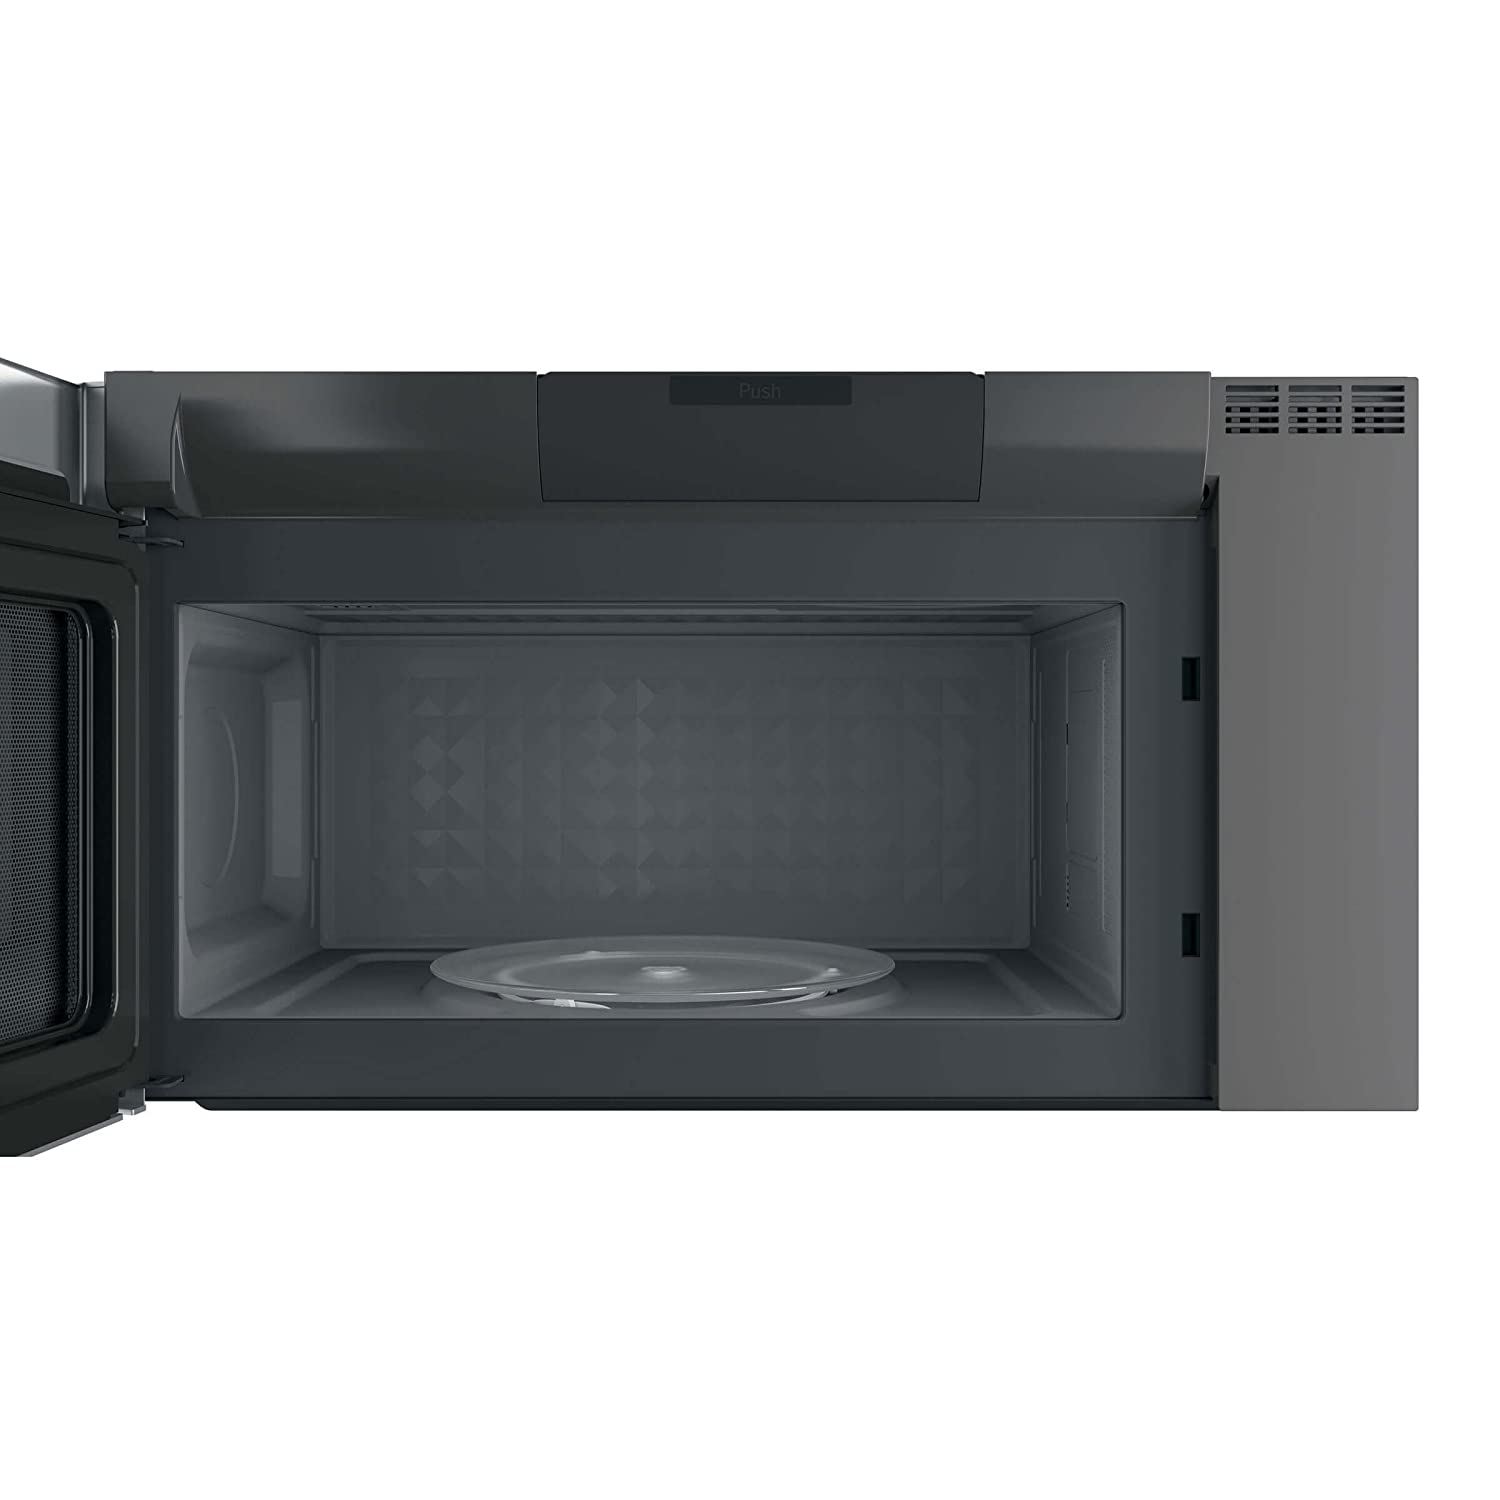 GE PVM9005SJSS Profile 2.1 Cu. Ft. Stainless Steel Over-the-Range MicrowaveReview